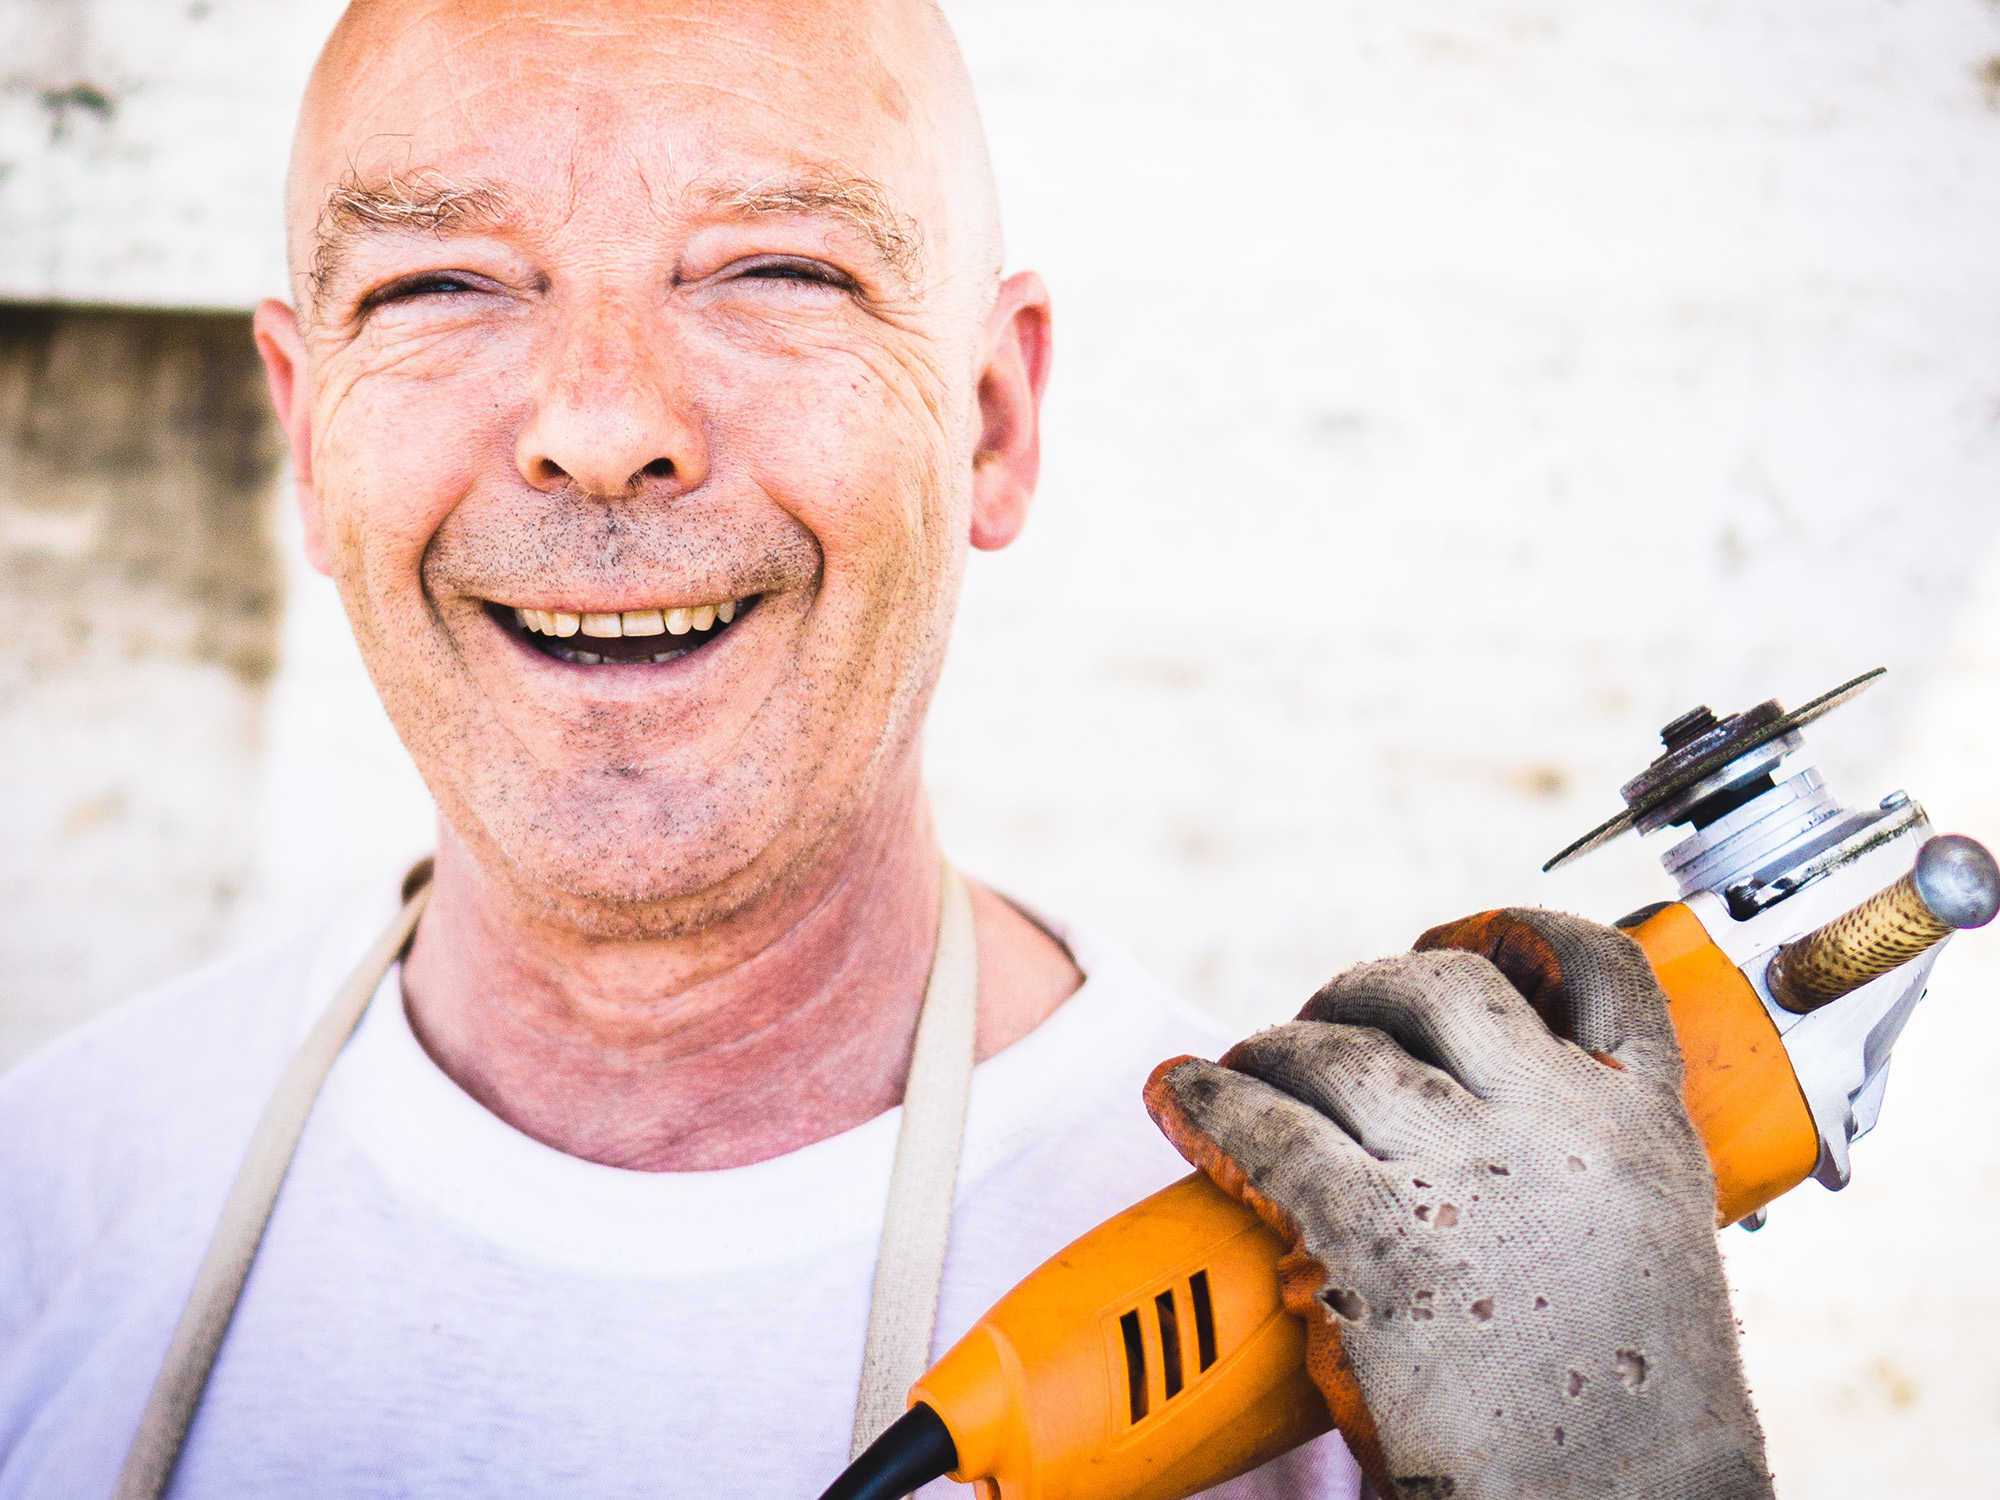 3 Reasons Handymen are the Unsung Heroes of Home Renovations